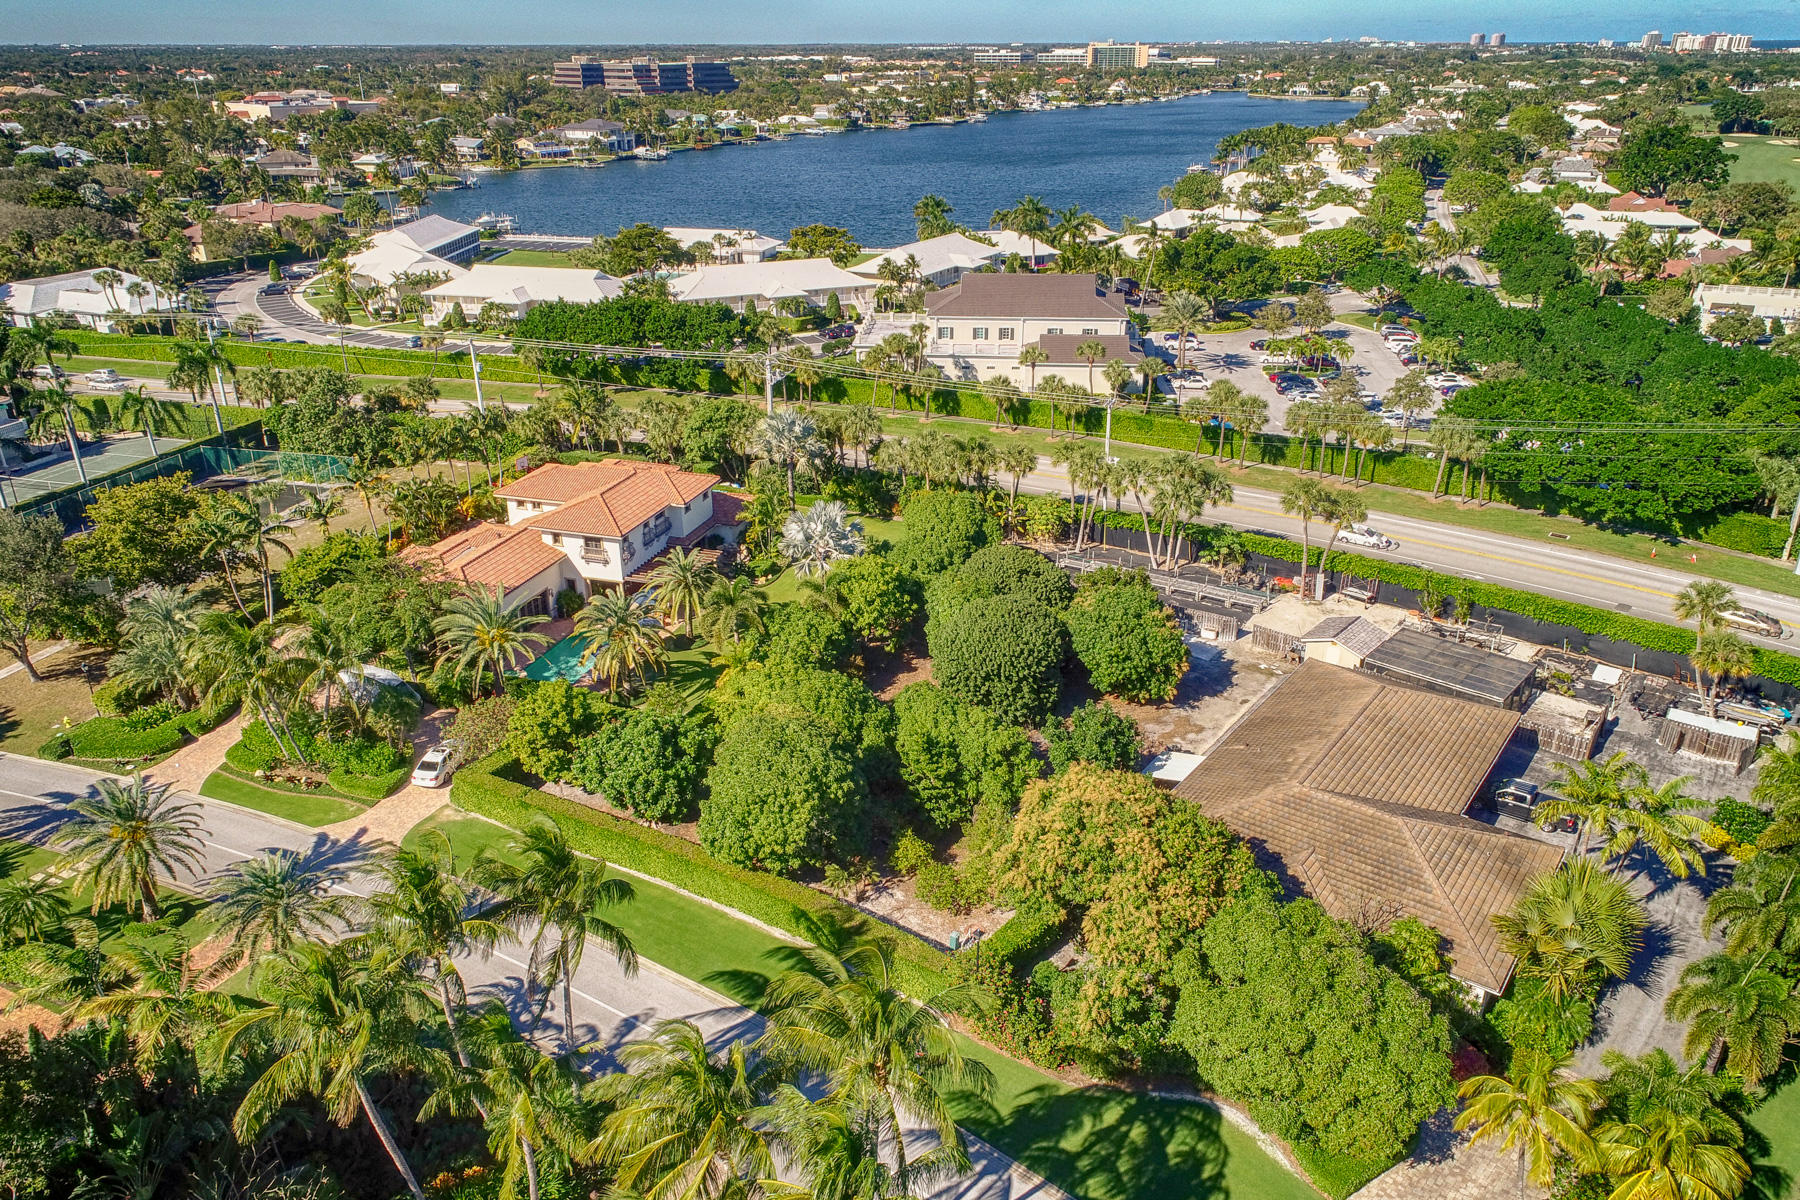 0 Old Harbour Lot 43c Road, North Palm Beach, Florida 33408, ,C,Single family,Old Harbour Lot 43c,RX-10501115